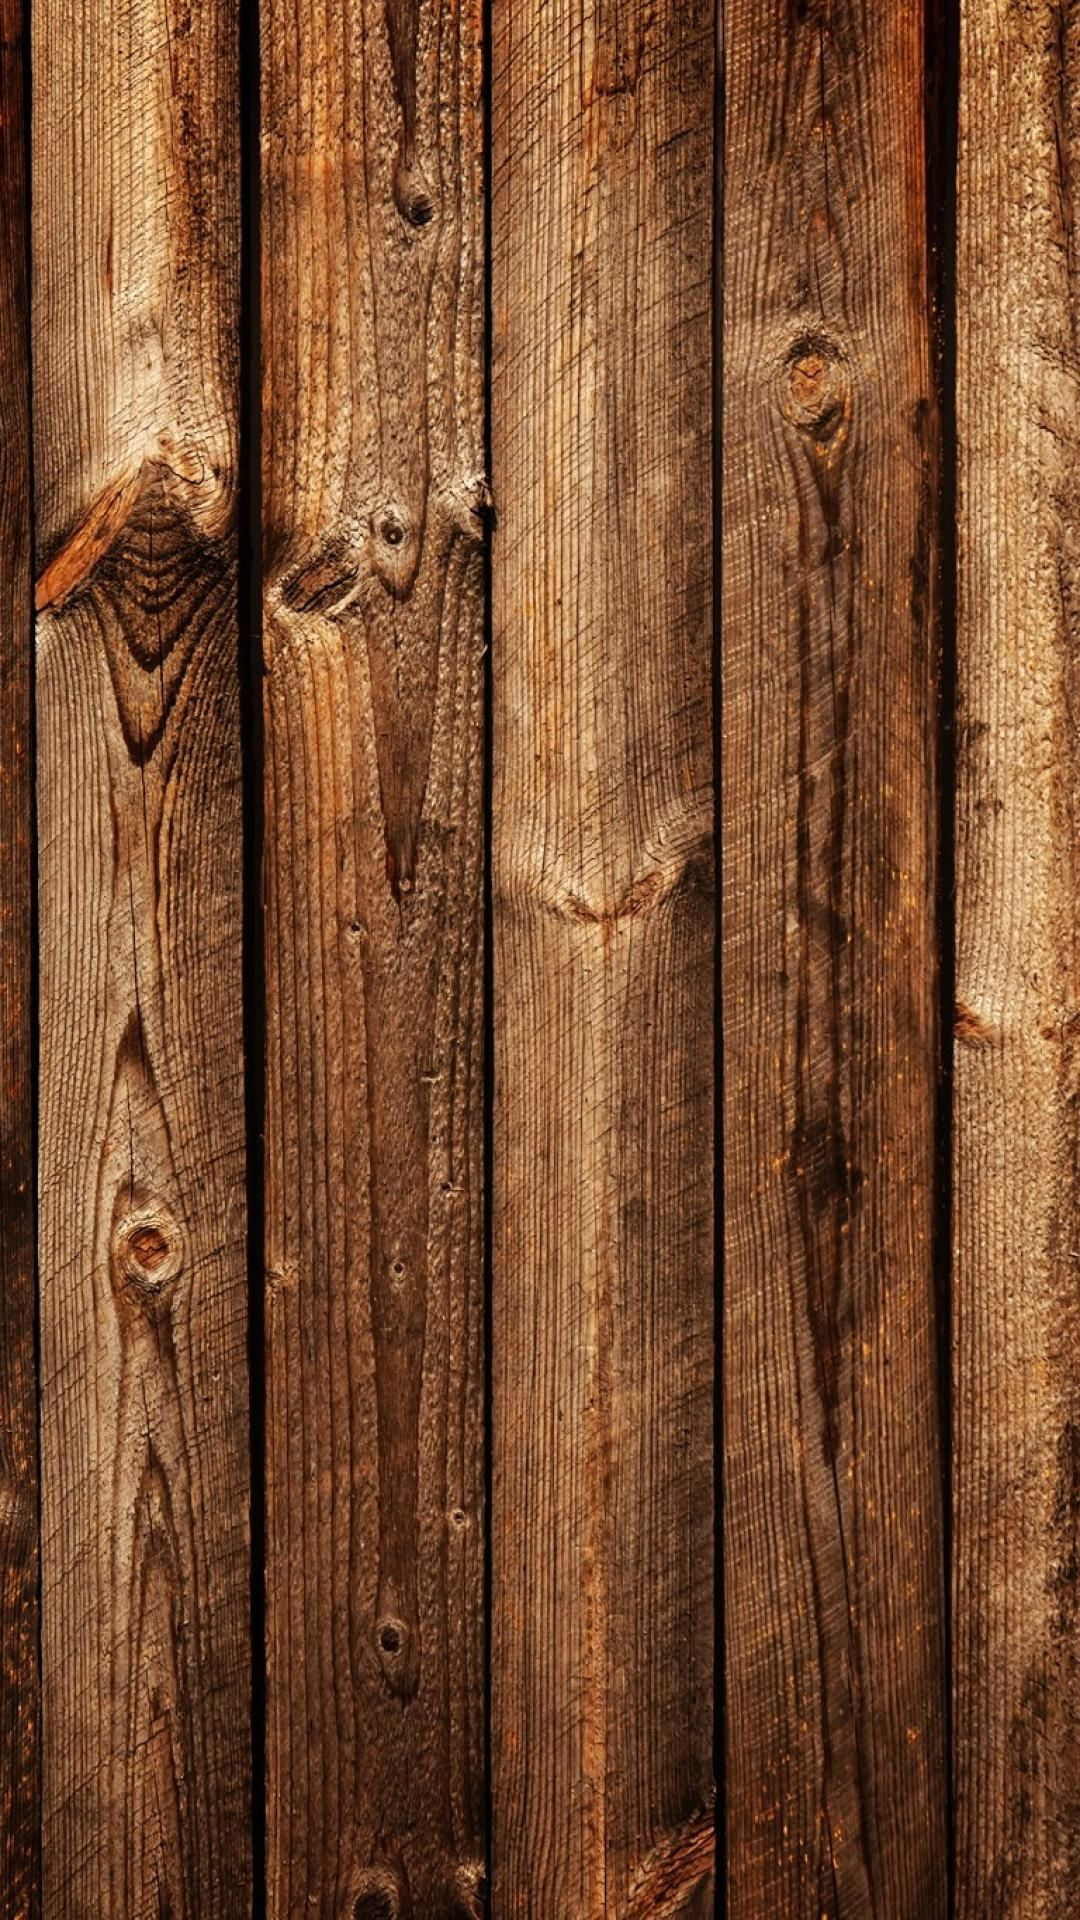 Best Ideas About Wood Wallpaper On Pinterest Fake Wood Wood Wallpaper Wood Iphone Wallpaper Textured Wallpaper